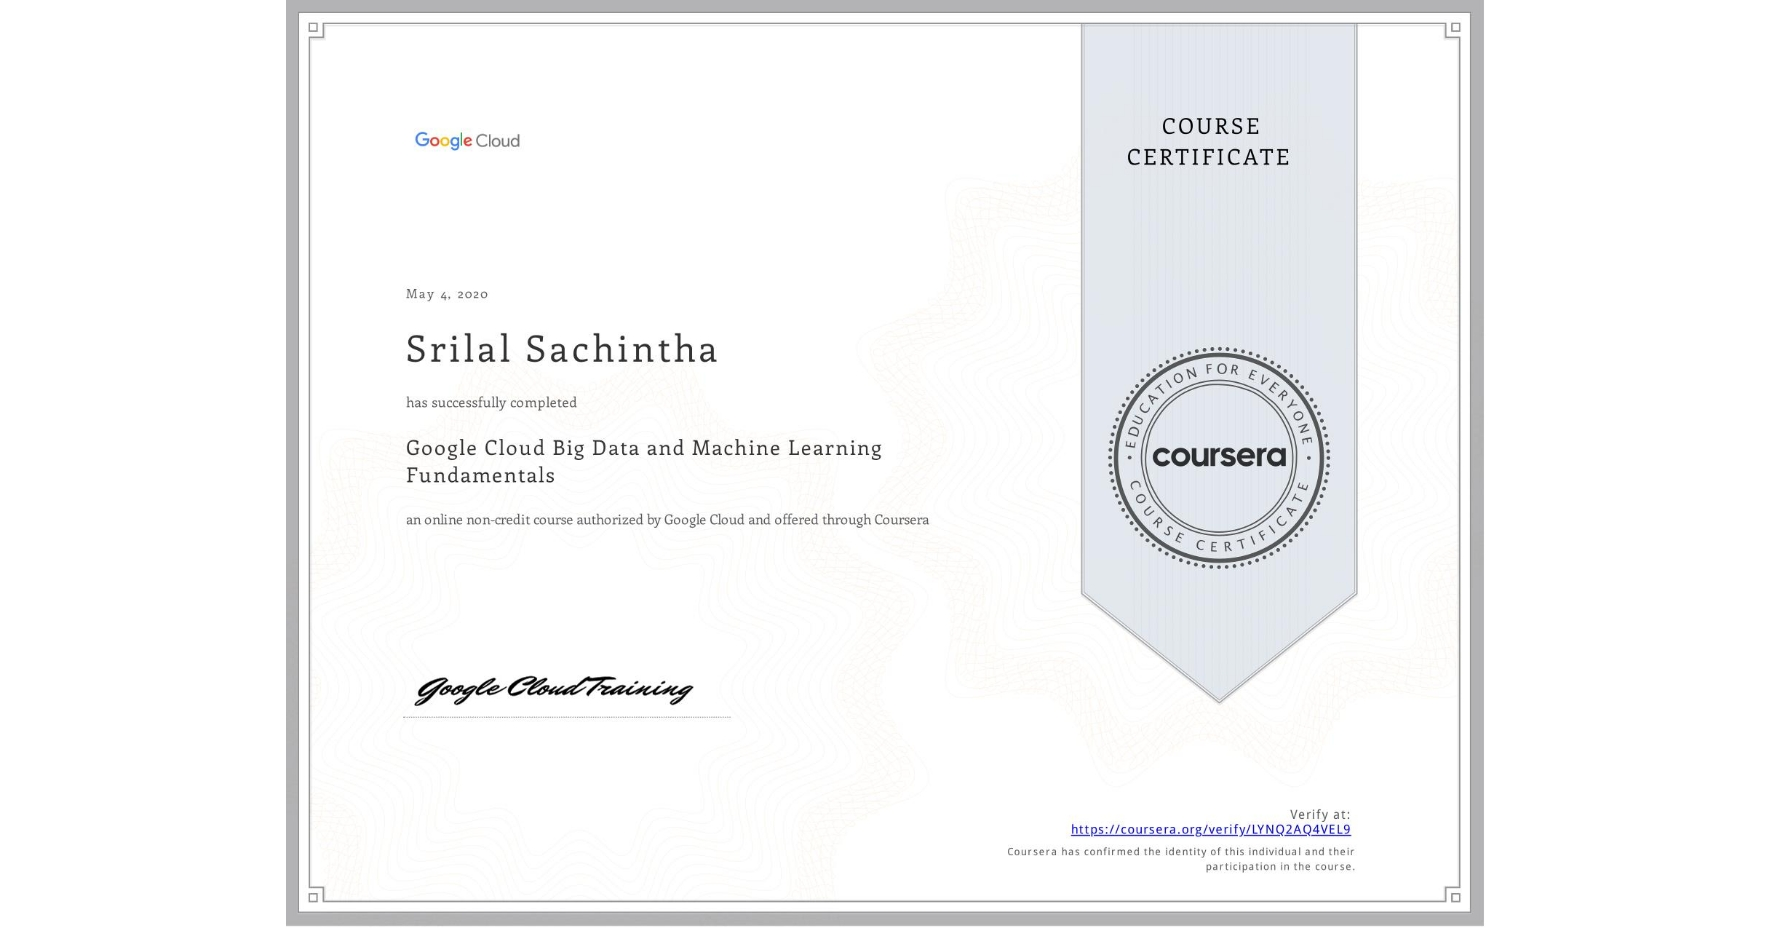 View certificate for Srilal Sachintha, Google Cloud Big Data and Machine Learning Fundamentals, an online non-credit course authorized by Google Cloud and offered through Coursera